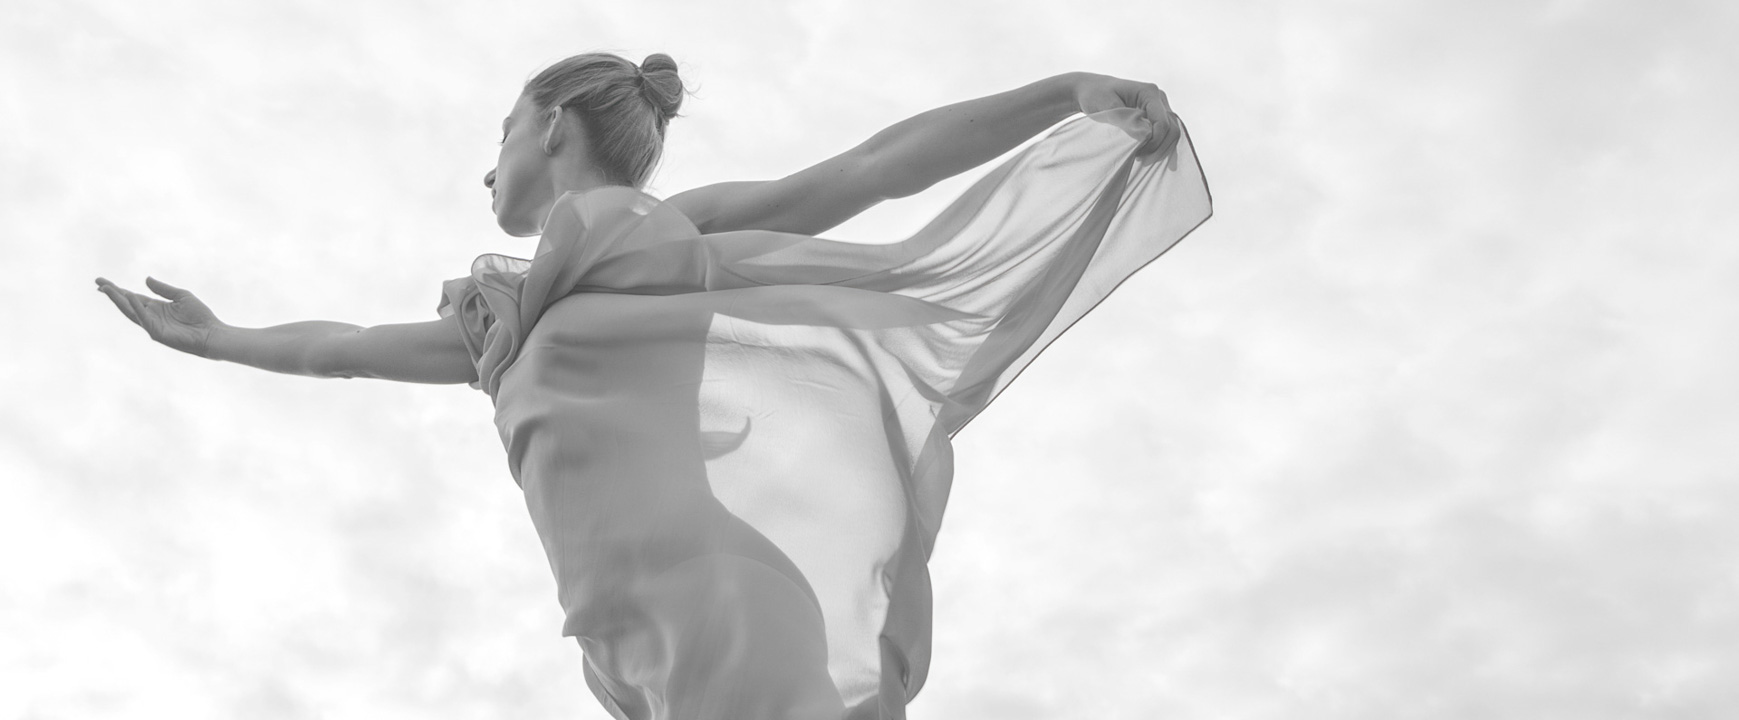 Ballerina dancing on the beach with translucent scarf wrapped around her body. Creative ballet dance photography